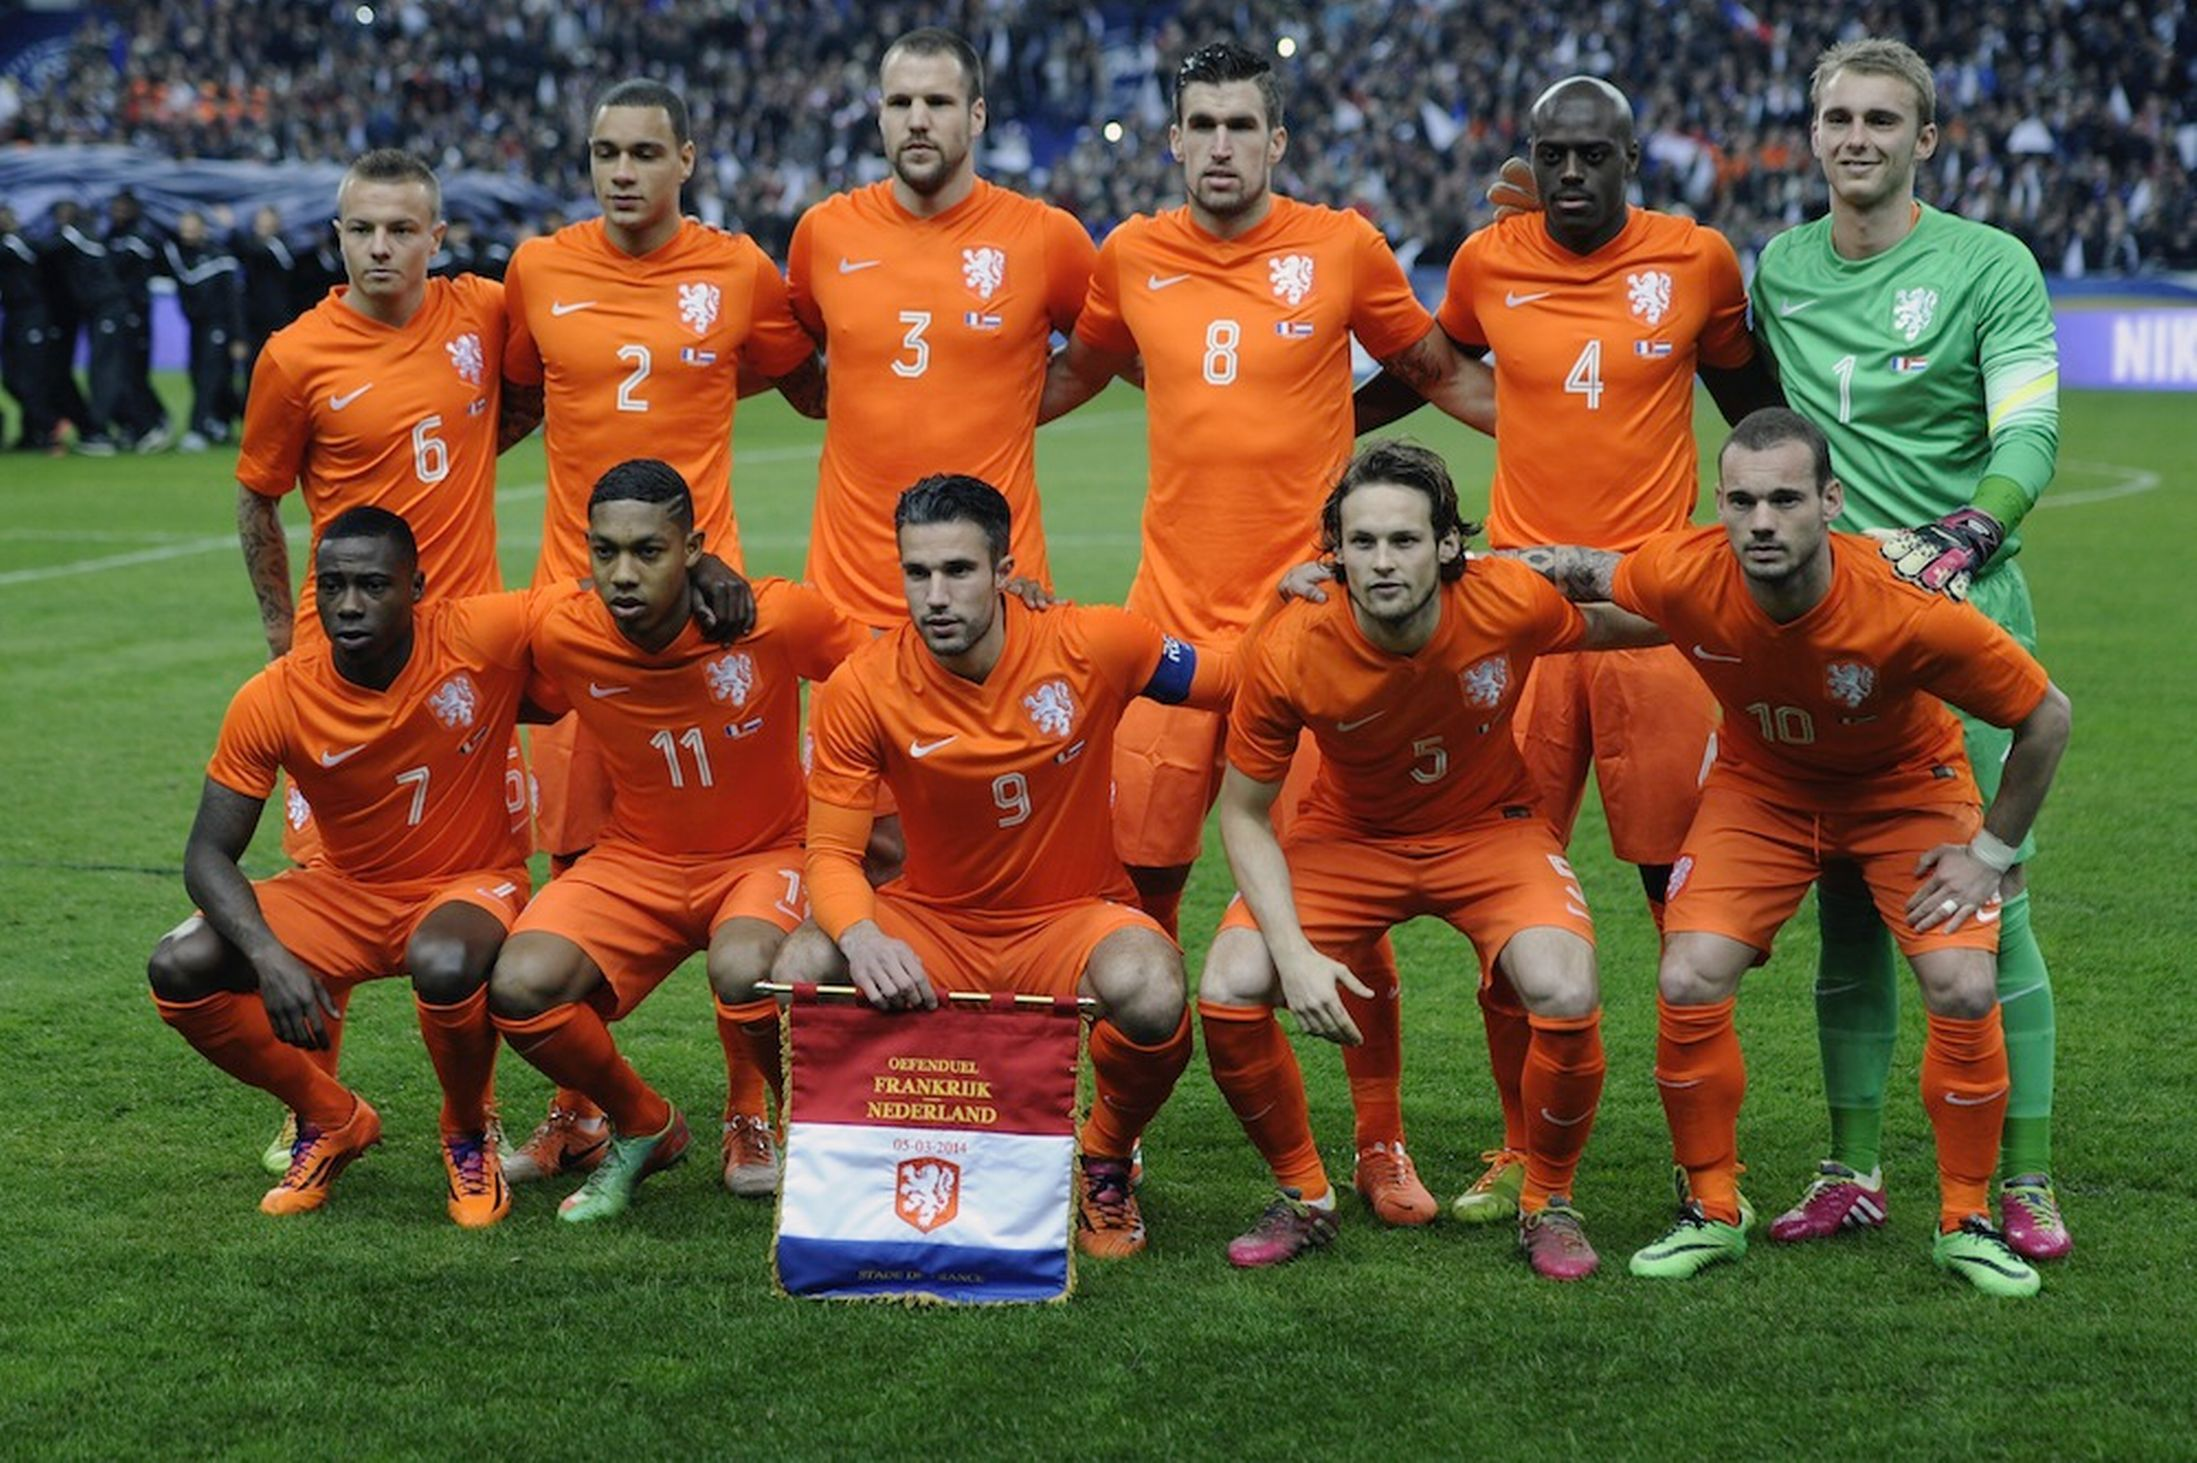 Netherlands Squad For World Cup 2014 Jersey Wallpaper National Football Teams Football Team World Cup 2014